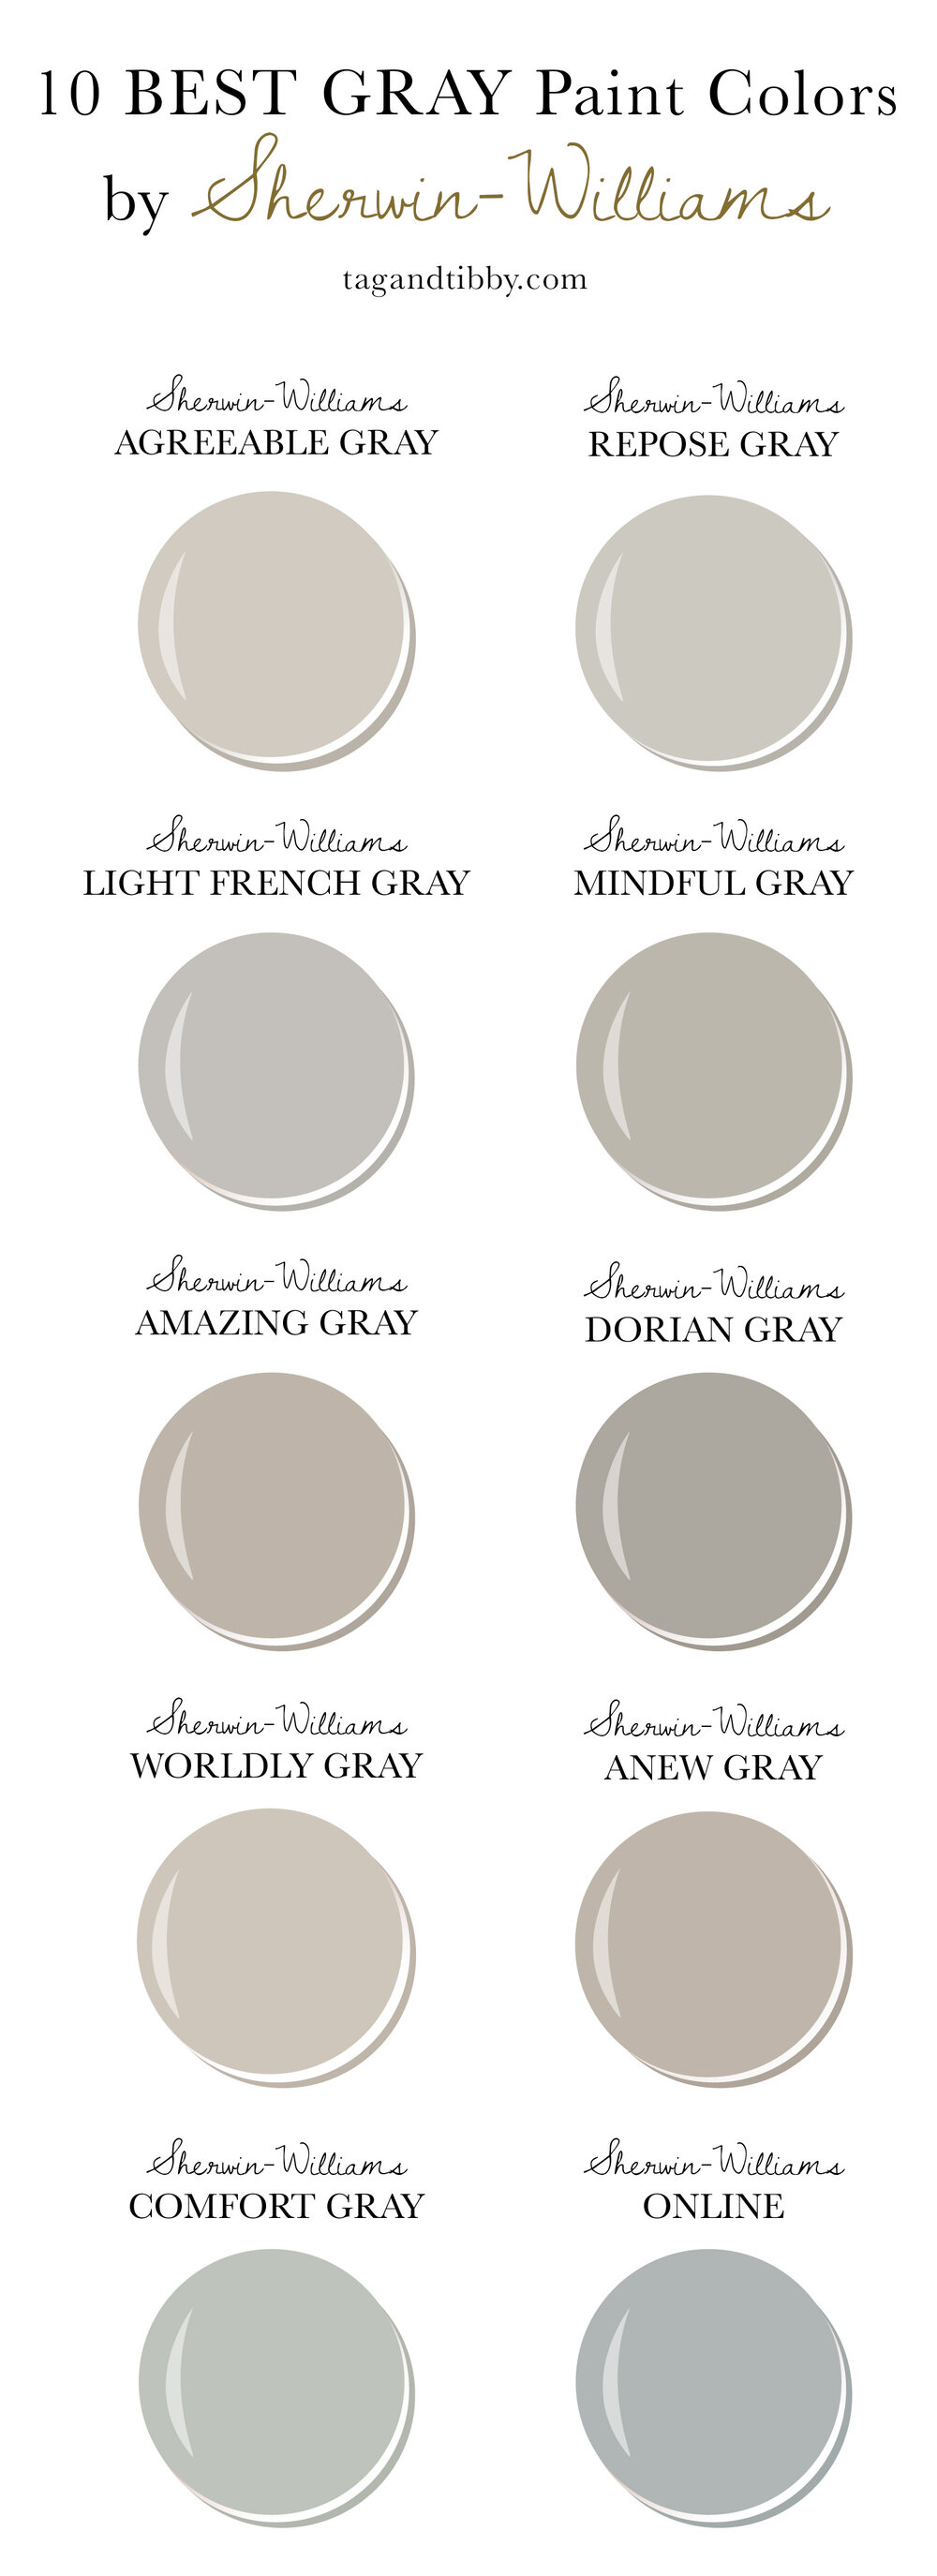 20 Best Gray Paint Colors by Sherwin Williams — Tag & Tibby Design